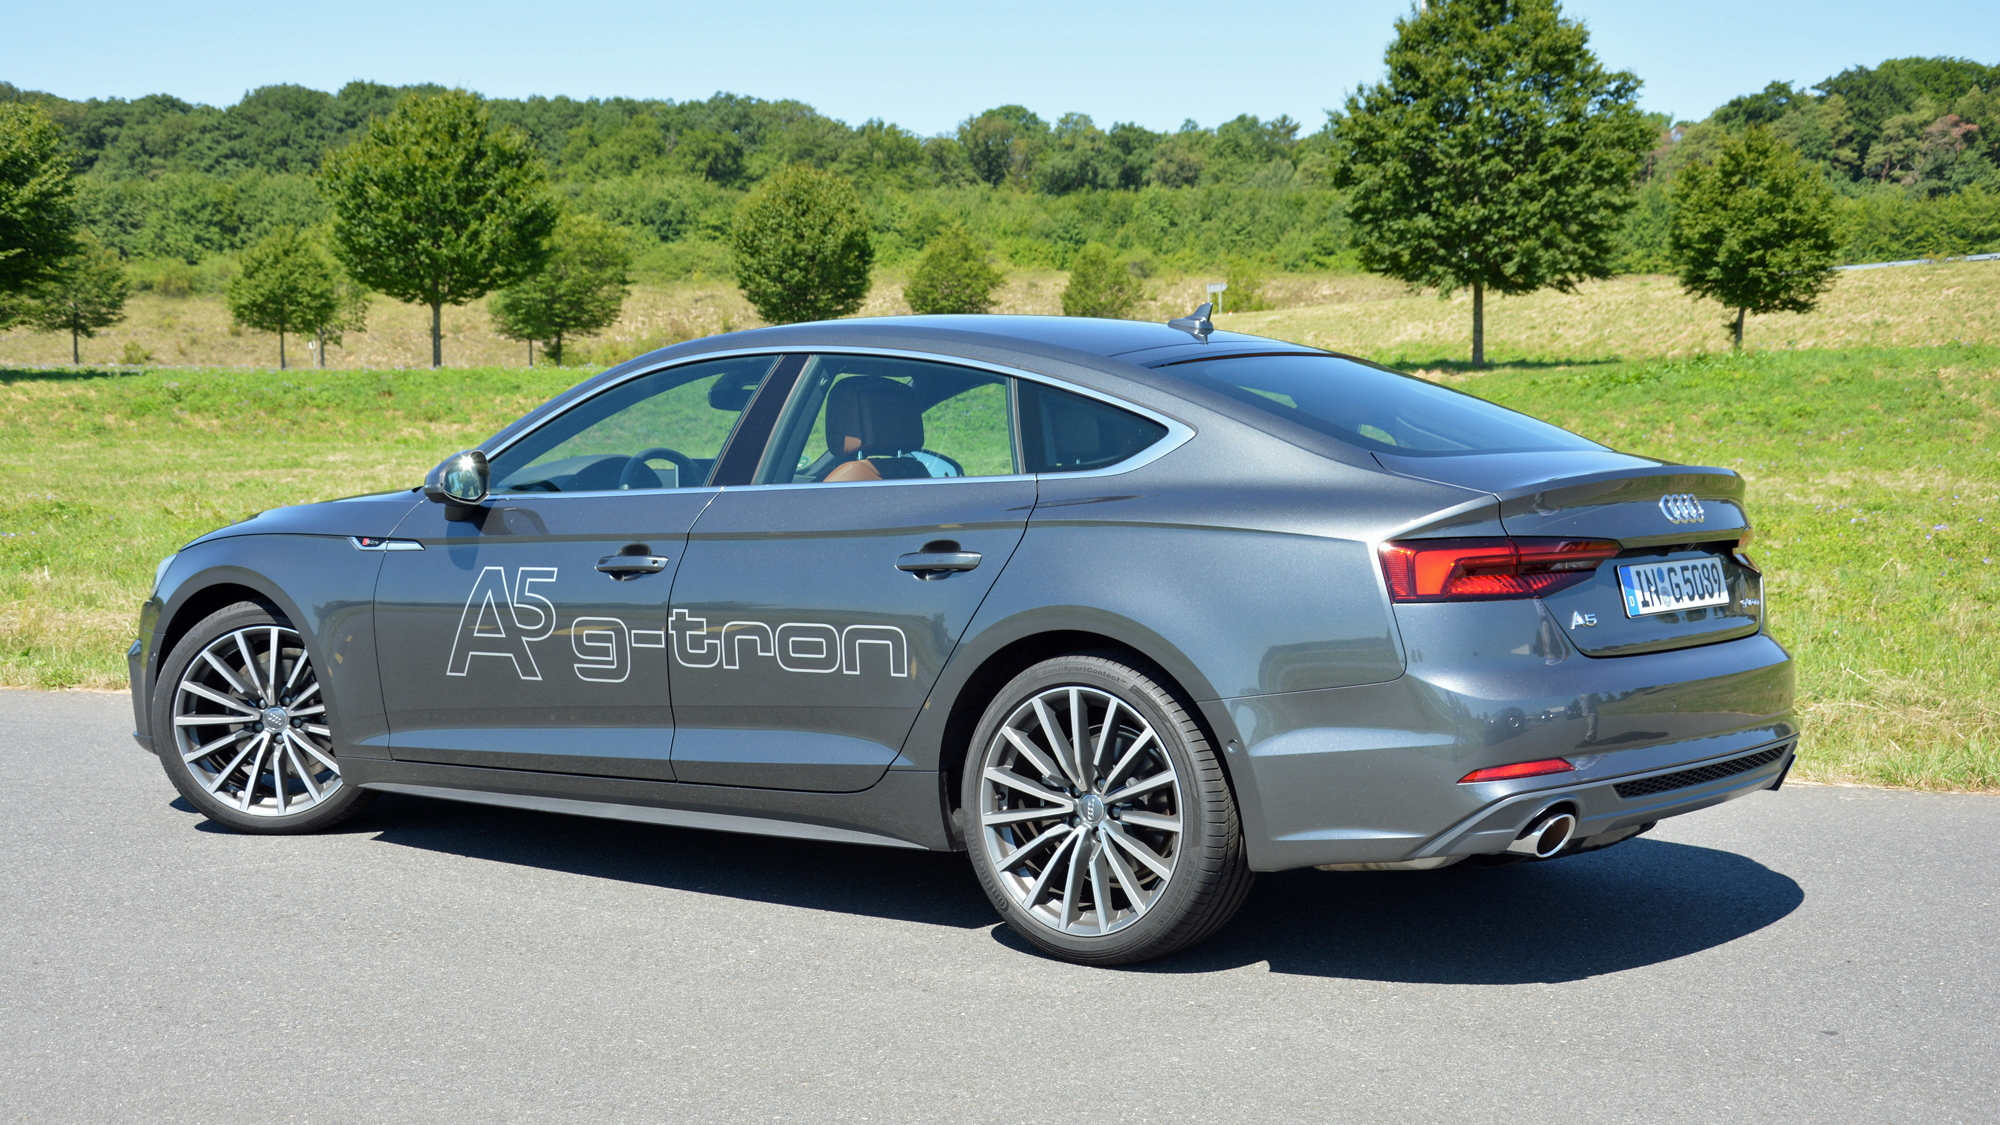 2017 Audi A5 Sportback g-tron (European model), driven, Aug 2017  [photo: Ronan Glon]